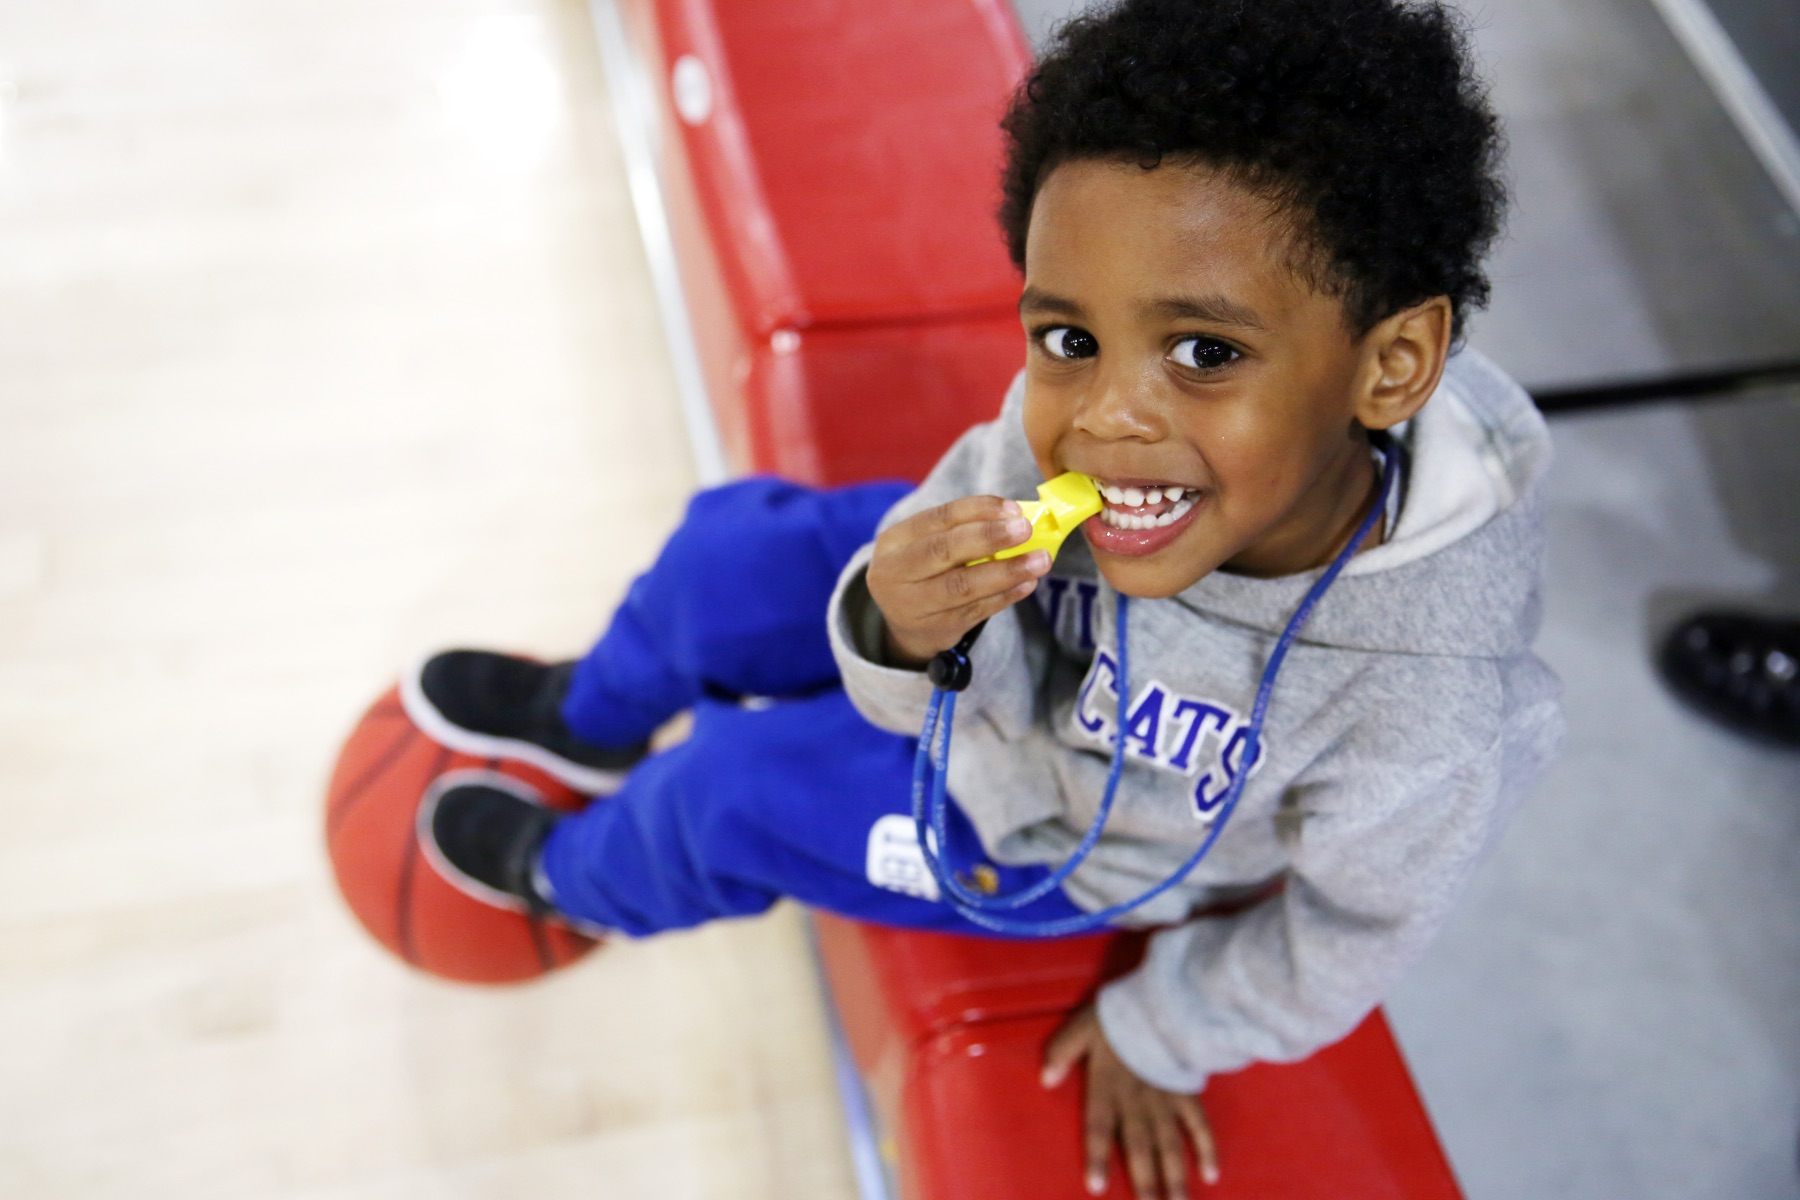 Jackson Lander, a five-year-old African American boy with curly black hair. He is sitting with a basketball at his feet, and a yellow whistle on his mouth as he smiles widely. He is wearing blue pants and a grey hoodie with the University of Kentucky 'Cats' emblem on it.